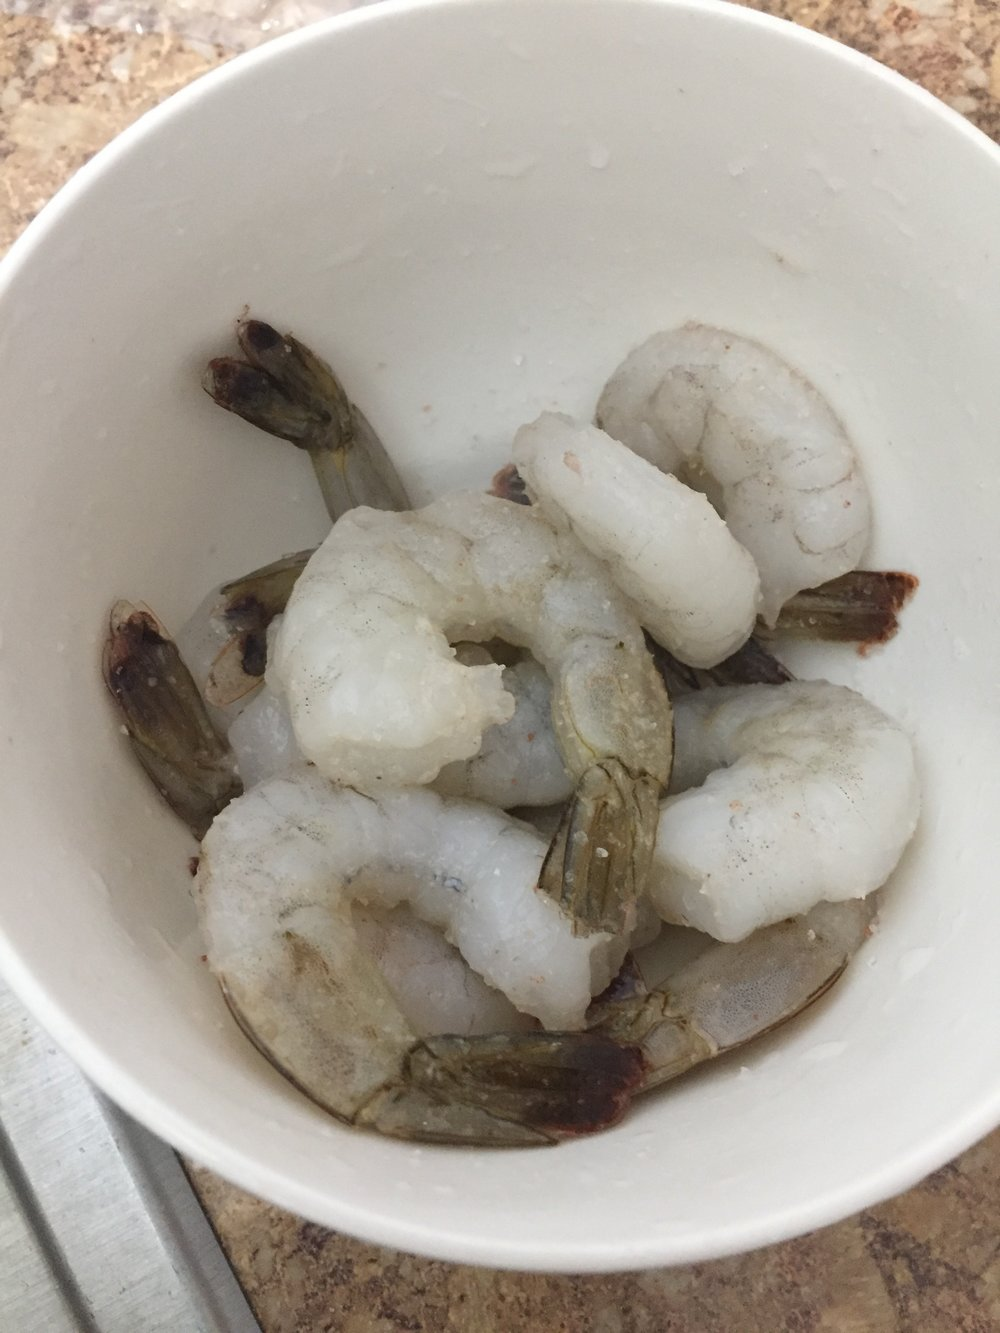 Rinse (and if necessary), defrost the shrimp. Season the raw shrimp with salt and pepper.